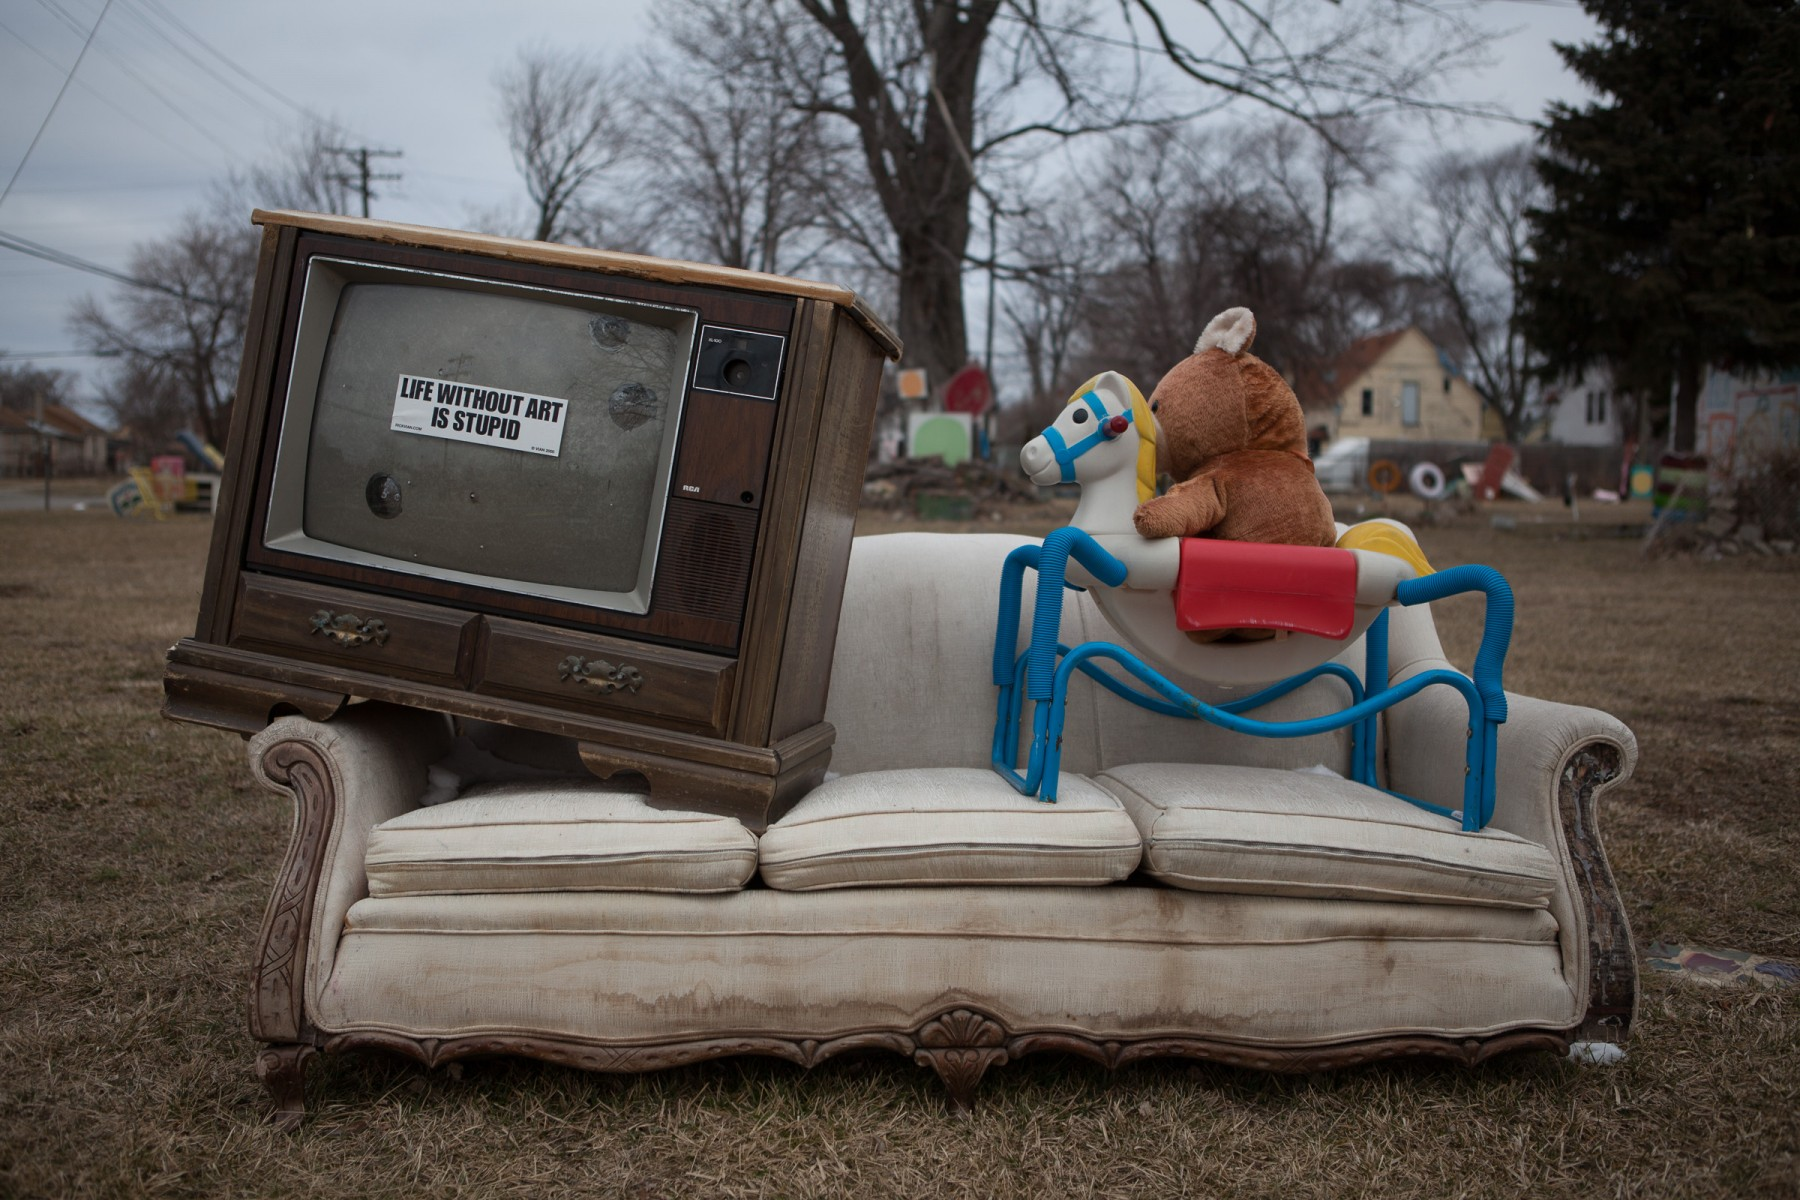 The Heidelberg Project is an outdoor art project in Detroit, Michigan. It was created in 1986 by artist Tyree Guyton and his grandfather Sam Mackeyas.